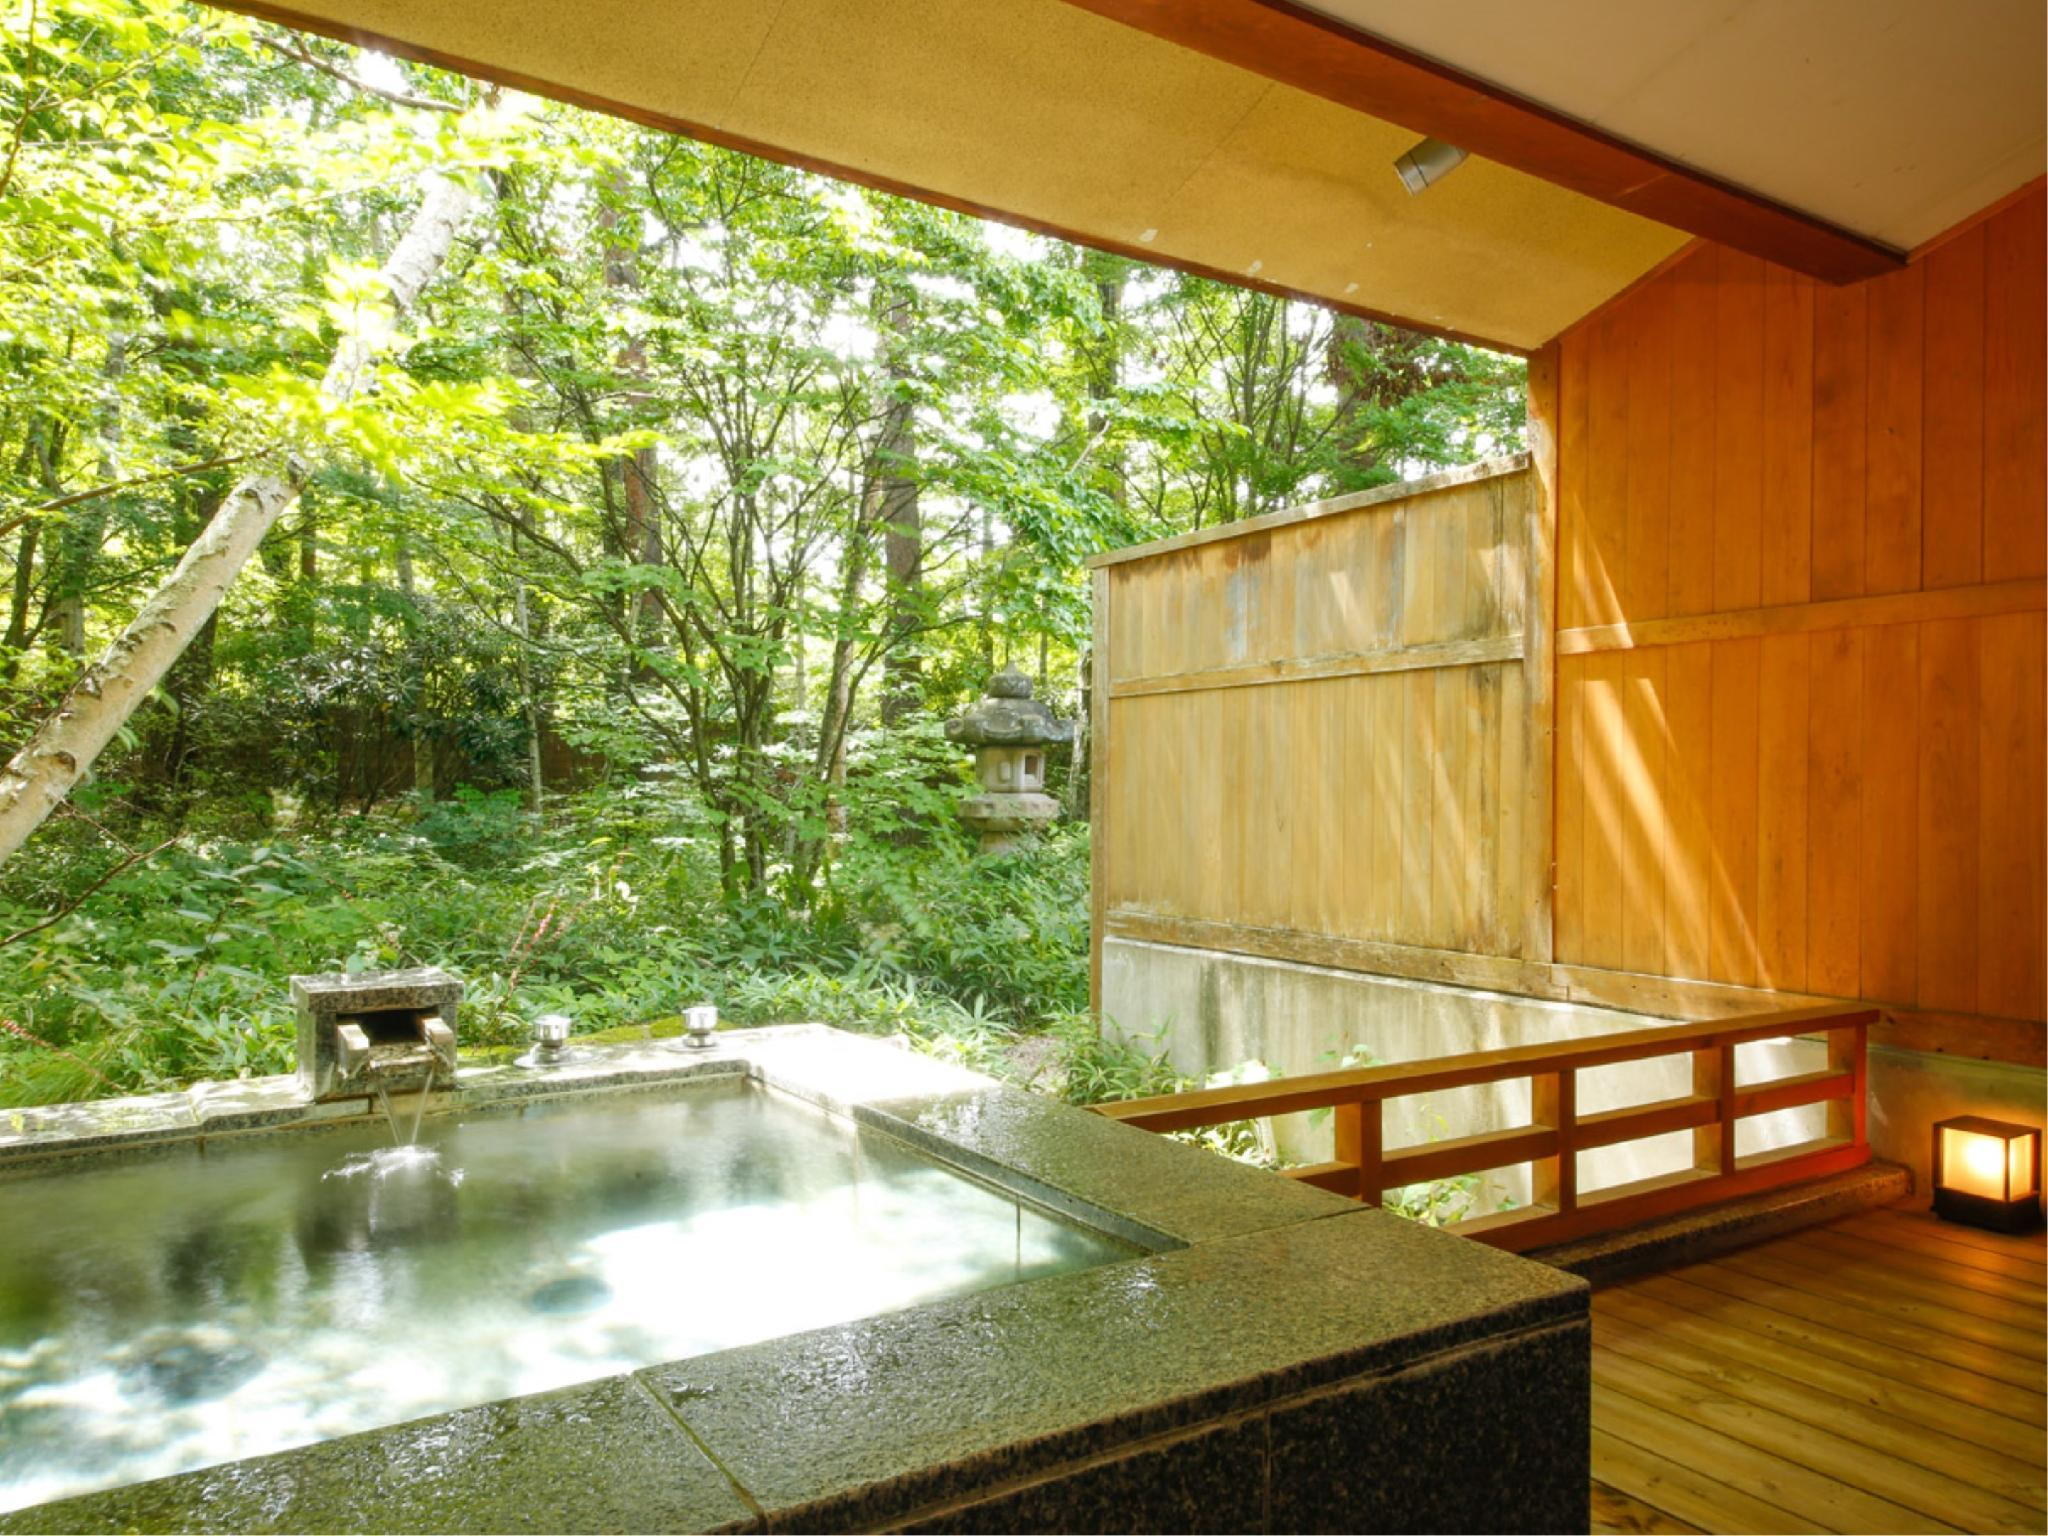 다다미 객실(KISARAGI・YAYOI/노천온천탕/실내툇마루) (Japanese-style Room with Open-air Hot Spring Bath + Hiroen Space (Kisaragi/Yayoi Types))